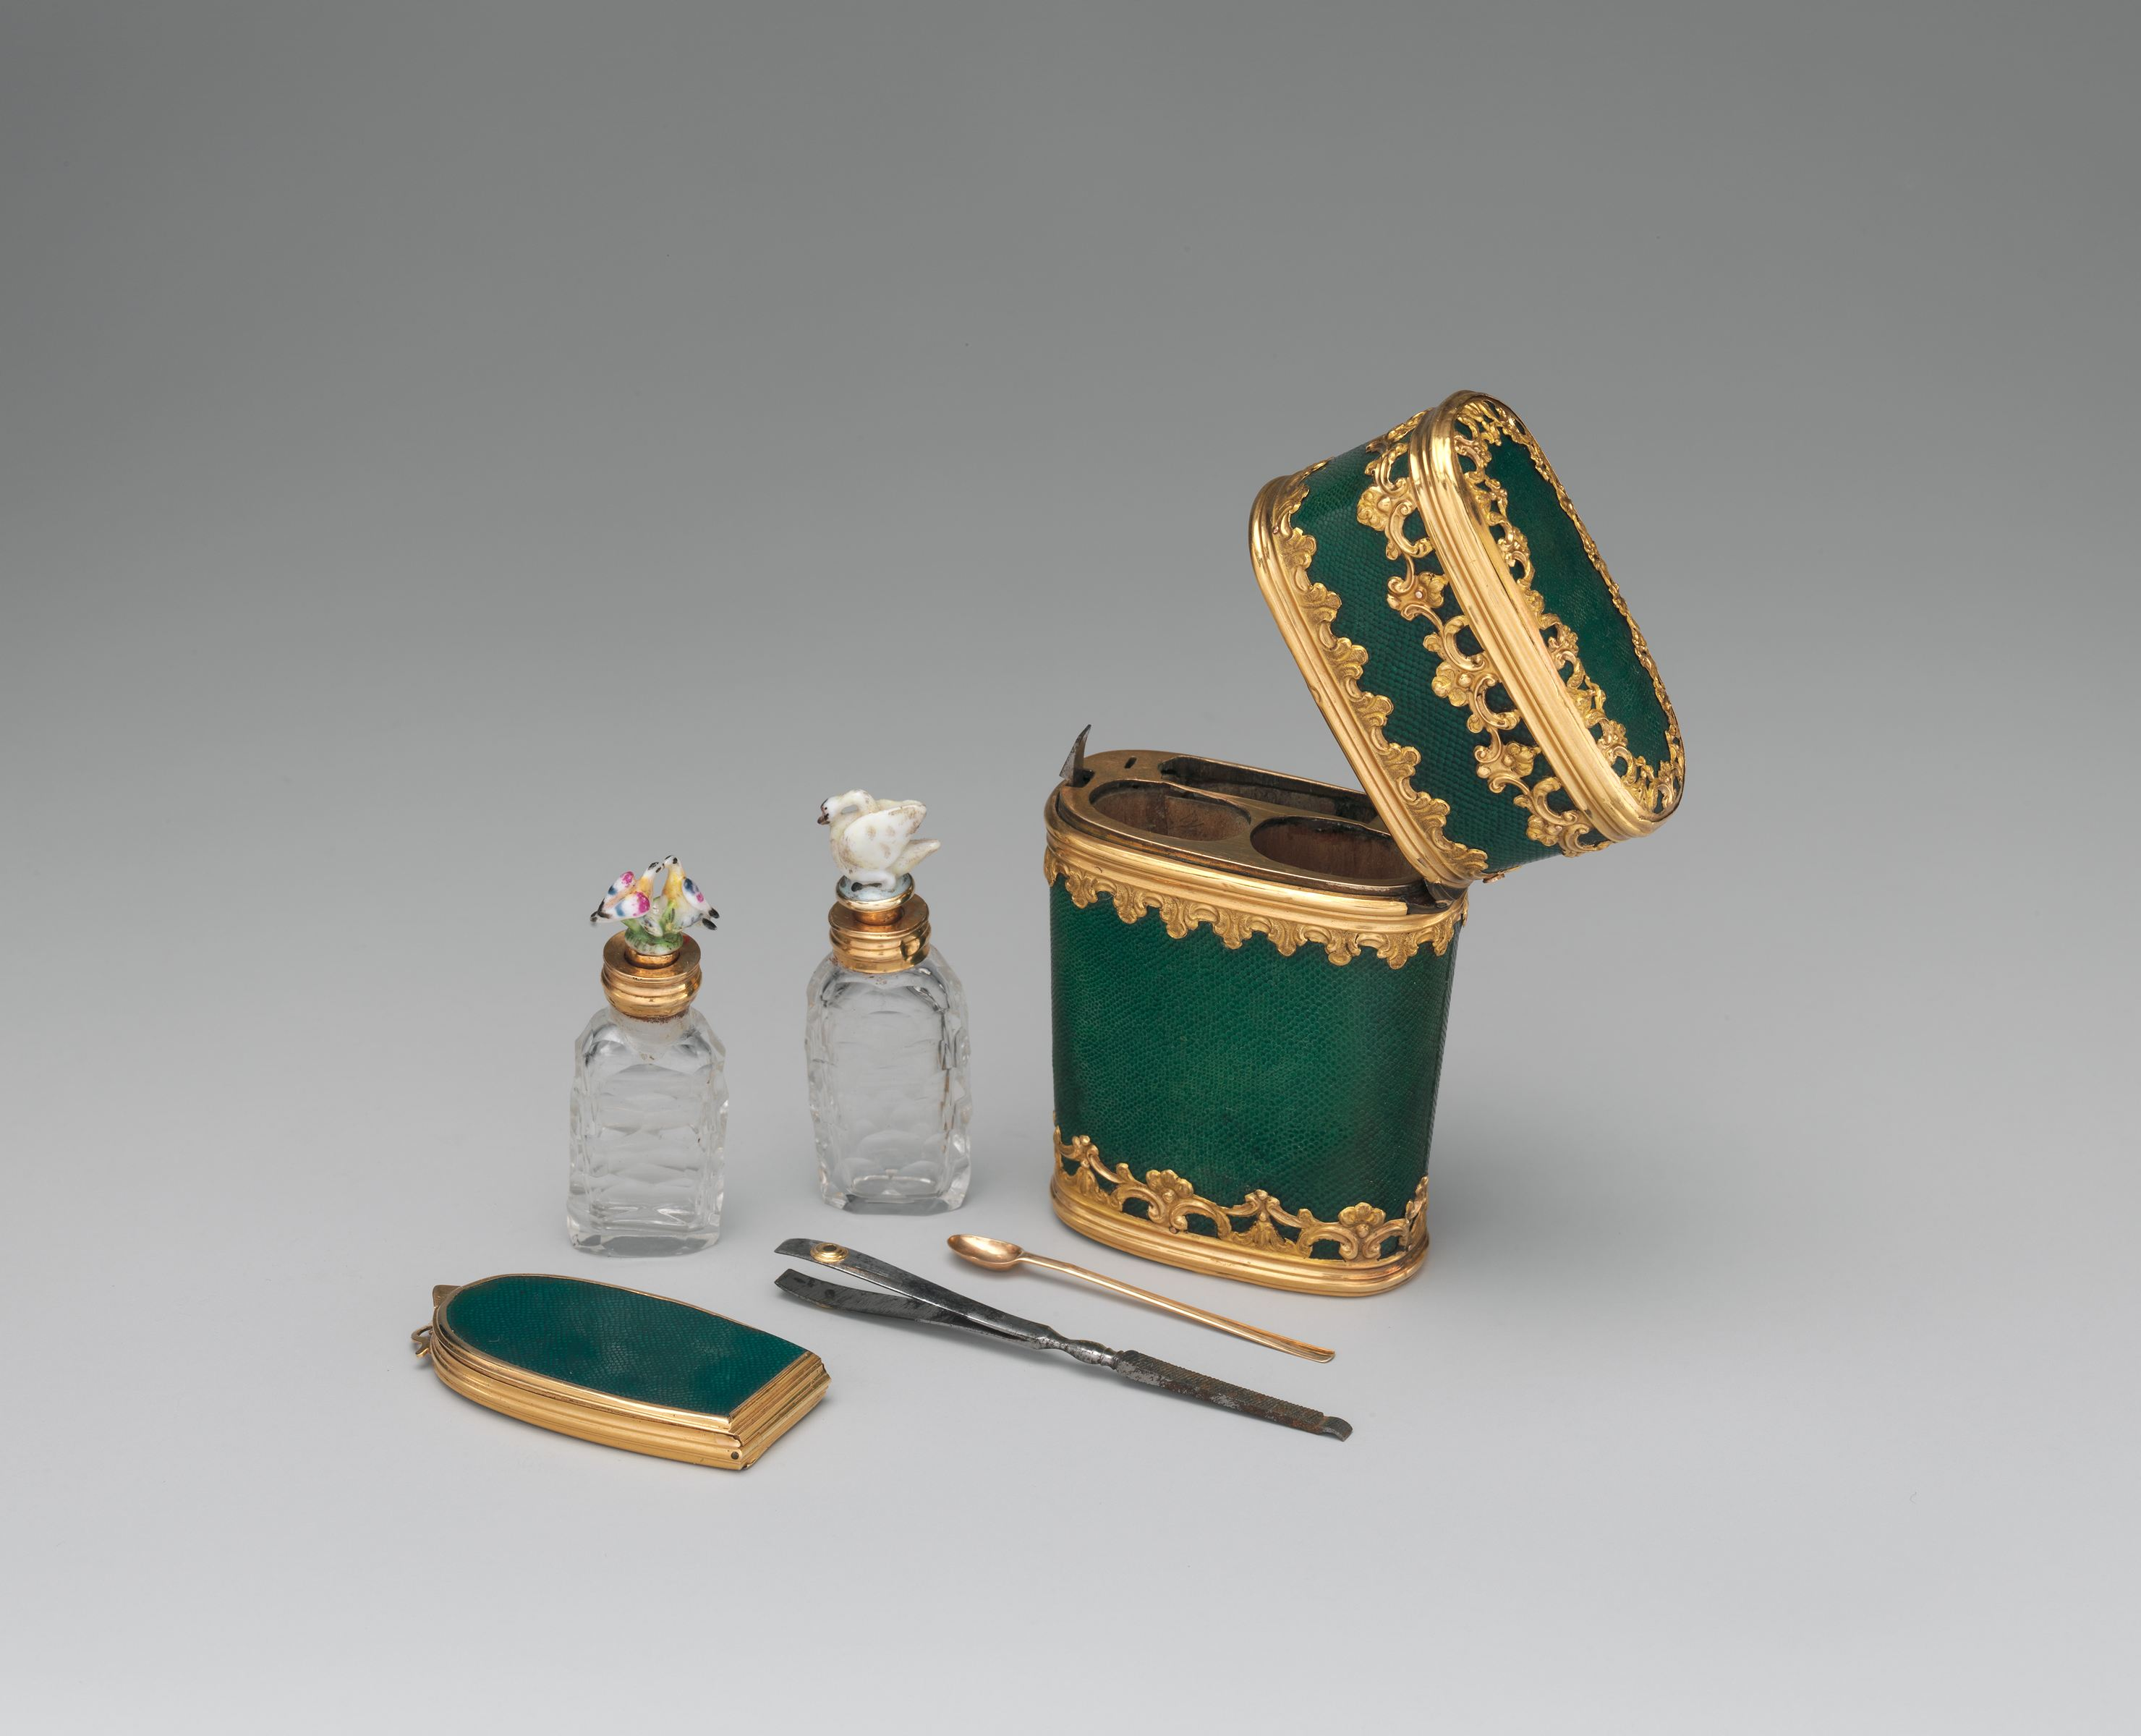 Gold, porcelain, glass and steel compose this 18th-century necessaire from France.